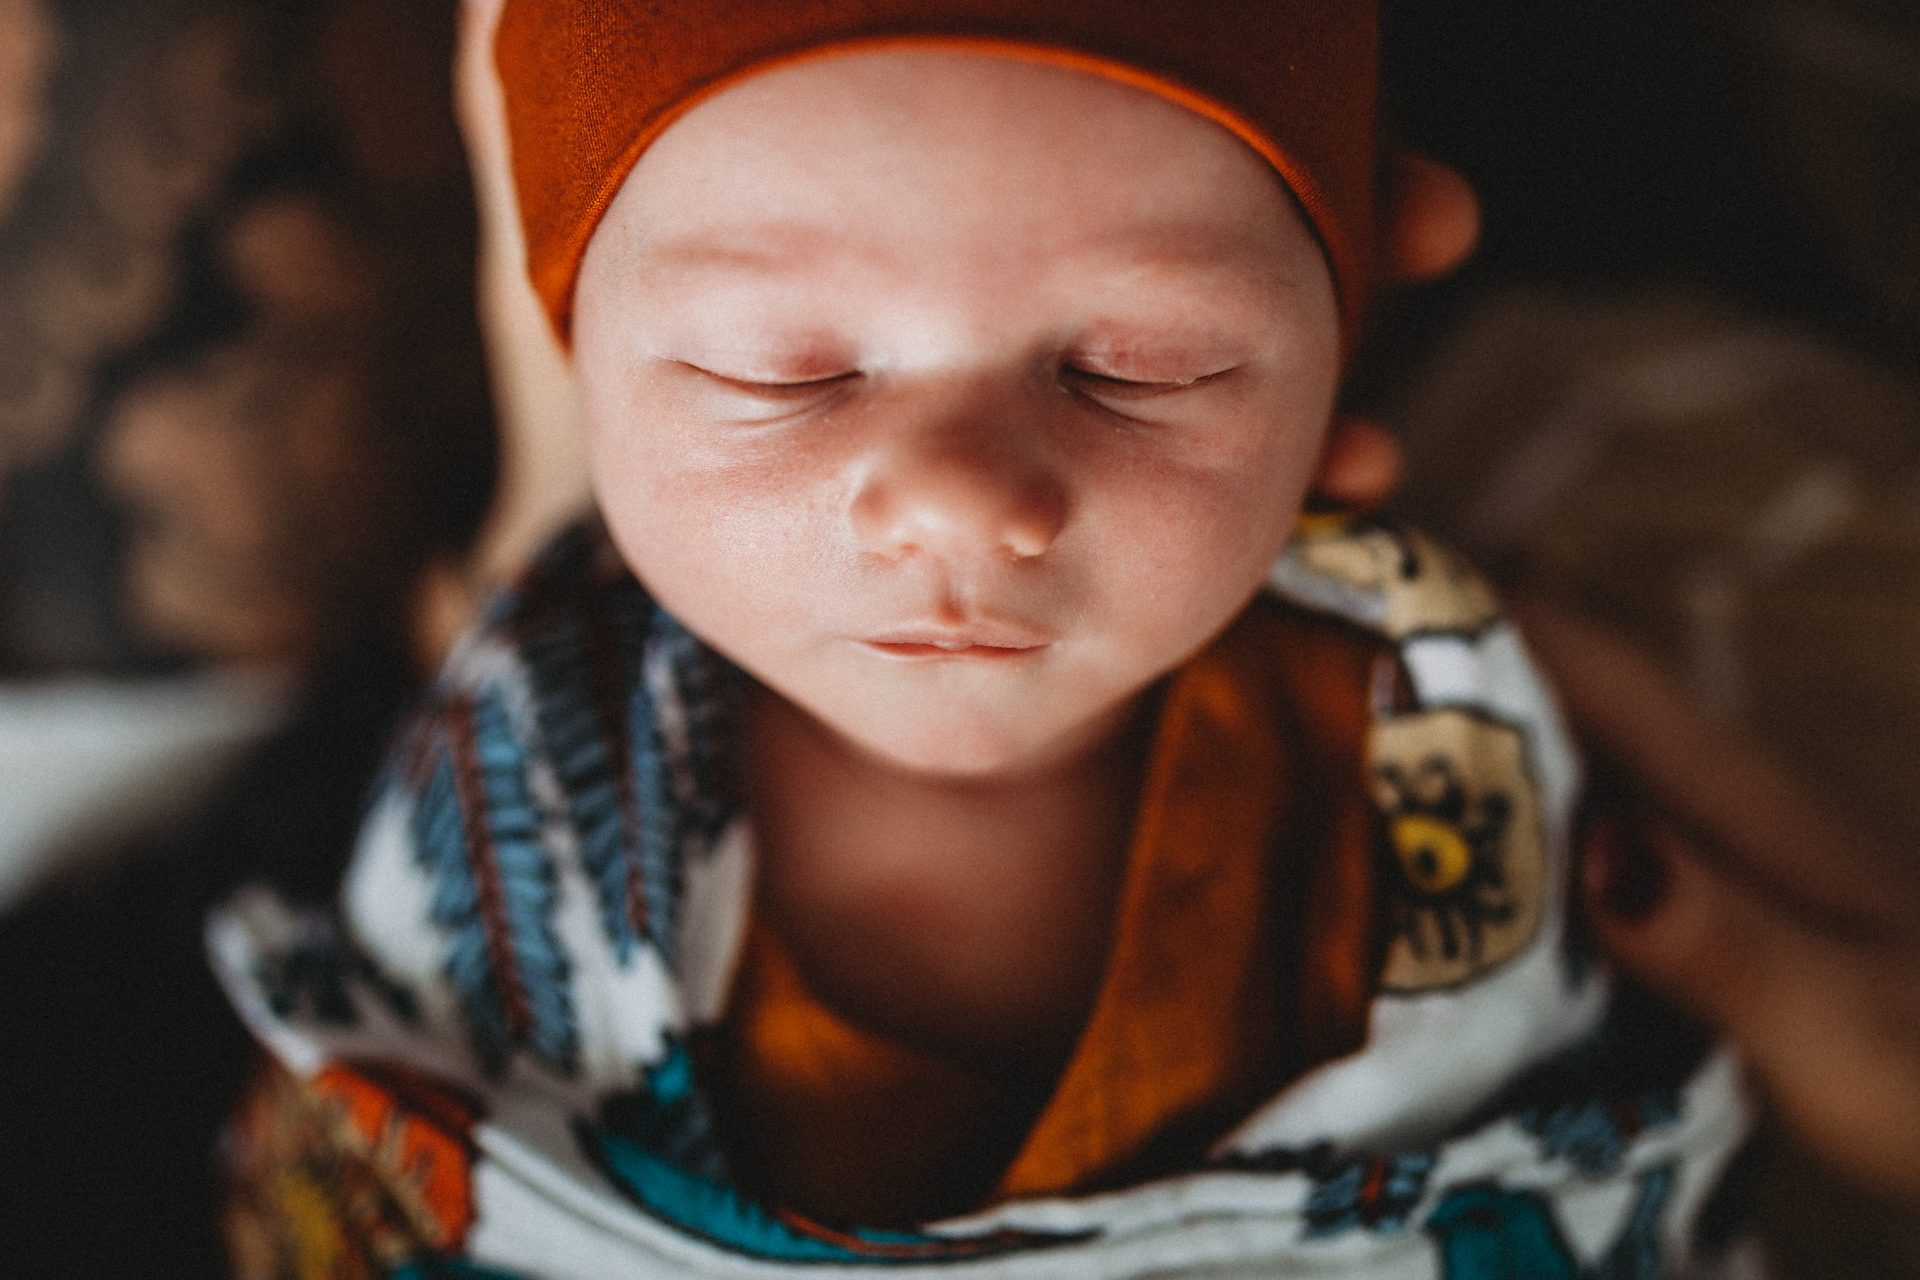 Close up of sleeping baby's face, being held by his father. Wearing dark orange beanie and floral muslin wrap.